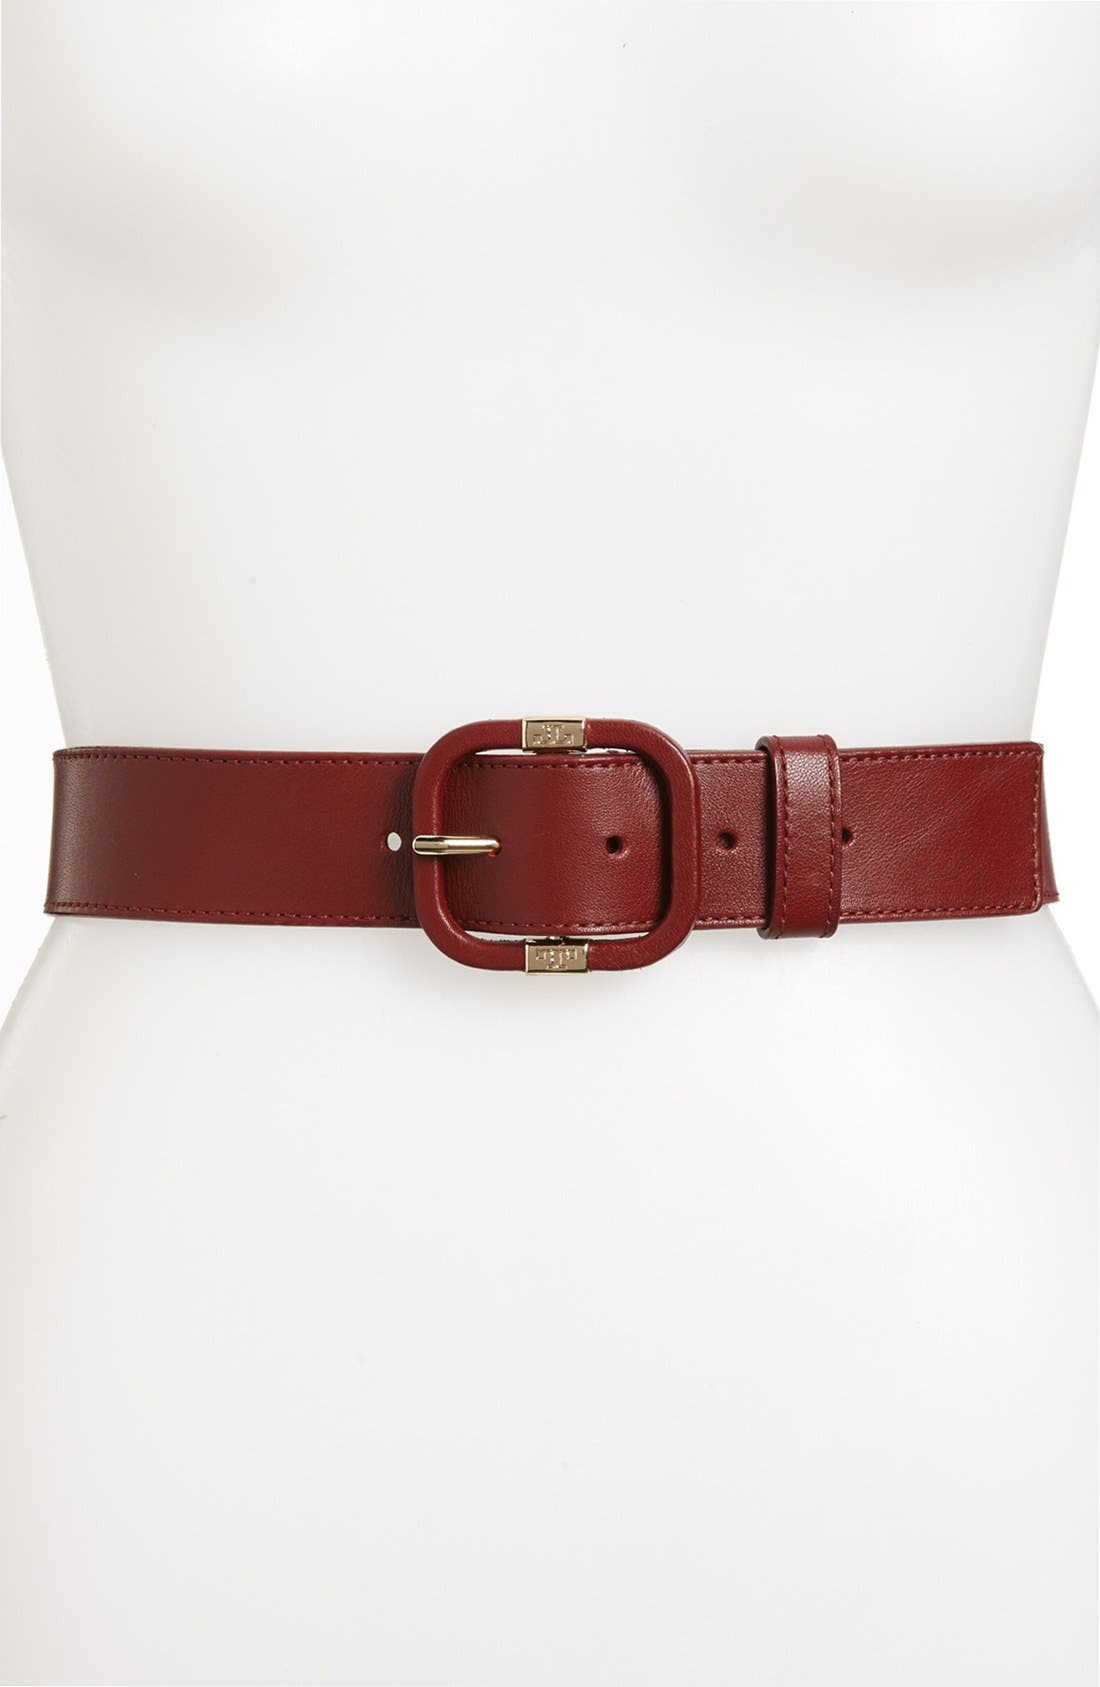 Alternate Image 1 Selected - Tory Burch Leather Belt